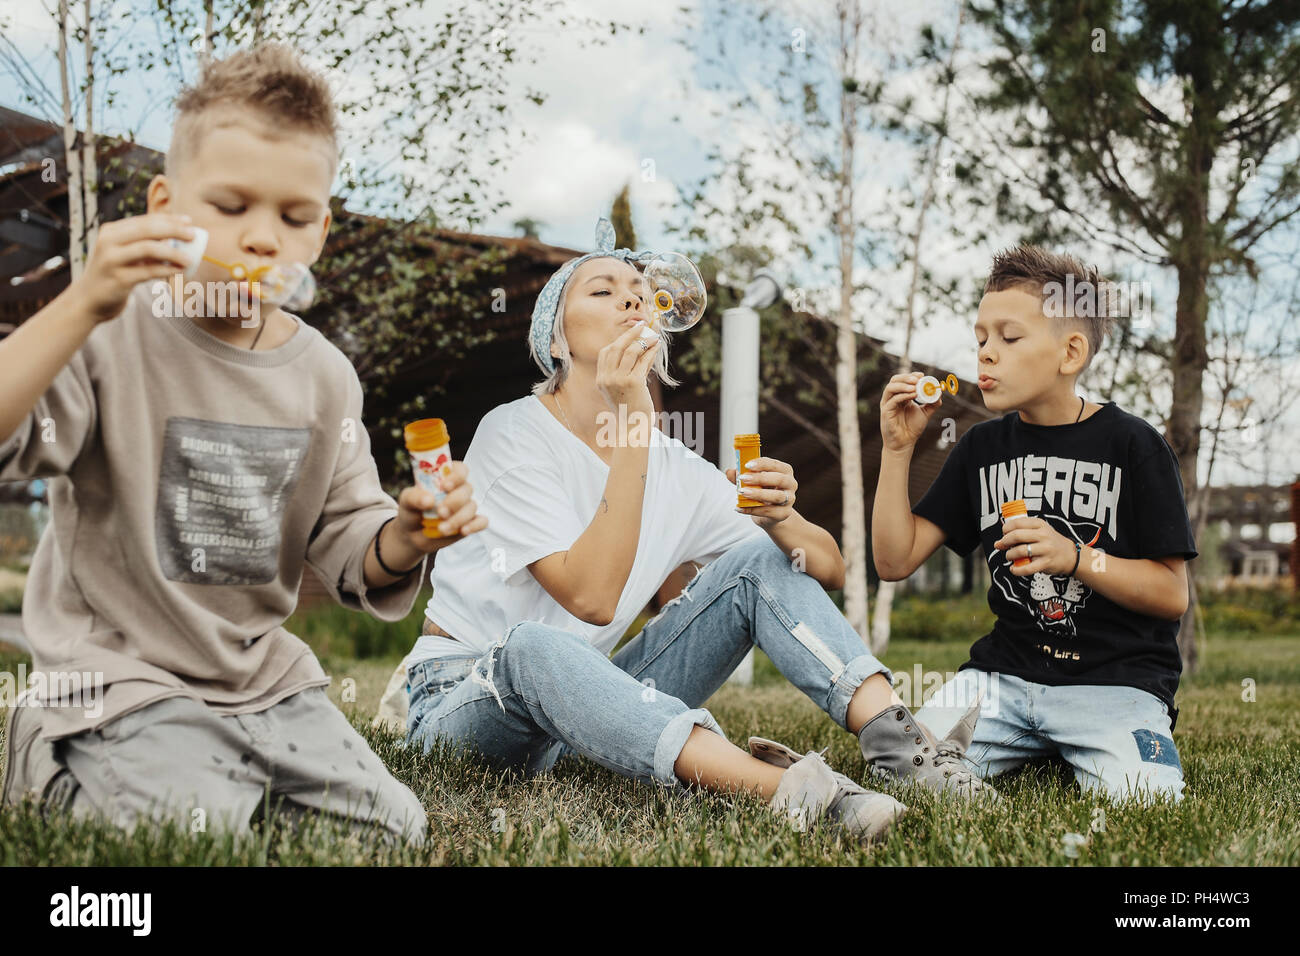 Close up of family blowing bubbles outdoors in the park. - Stock Image